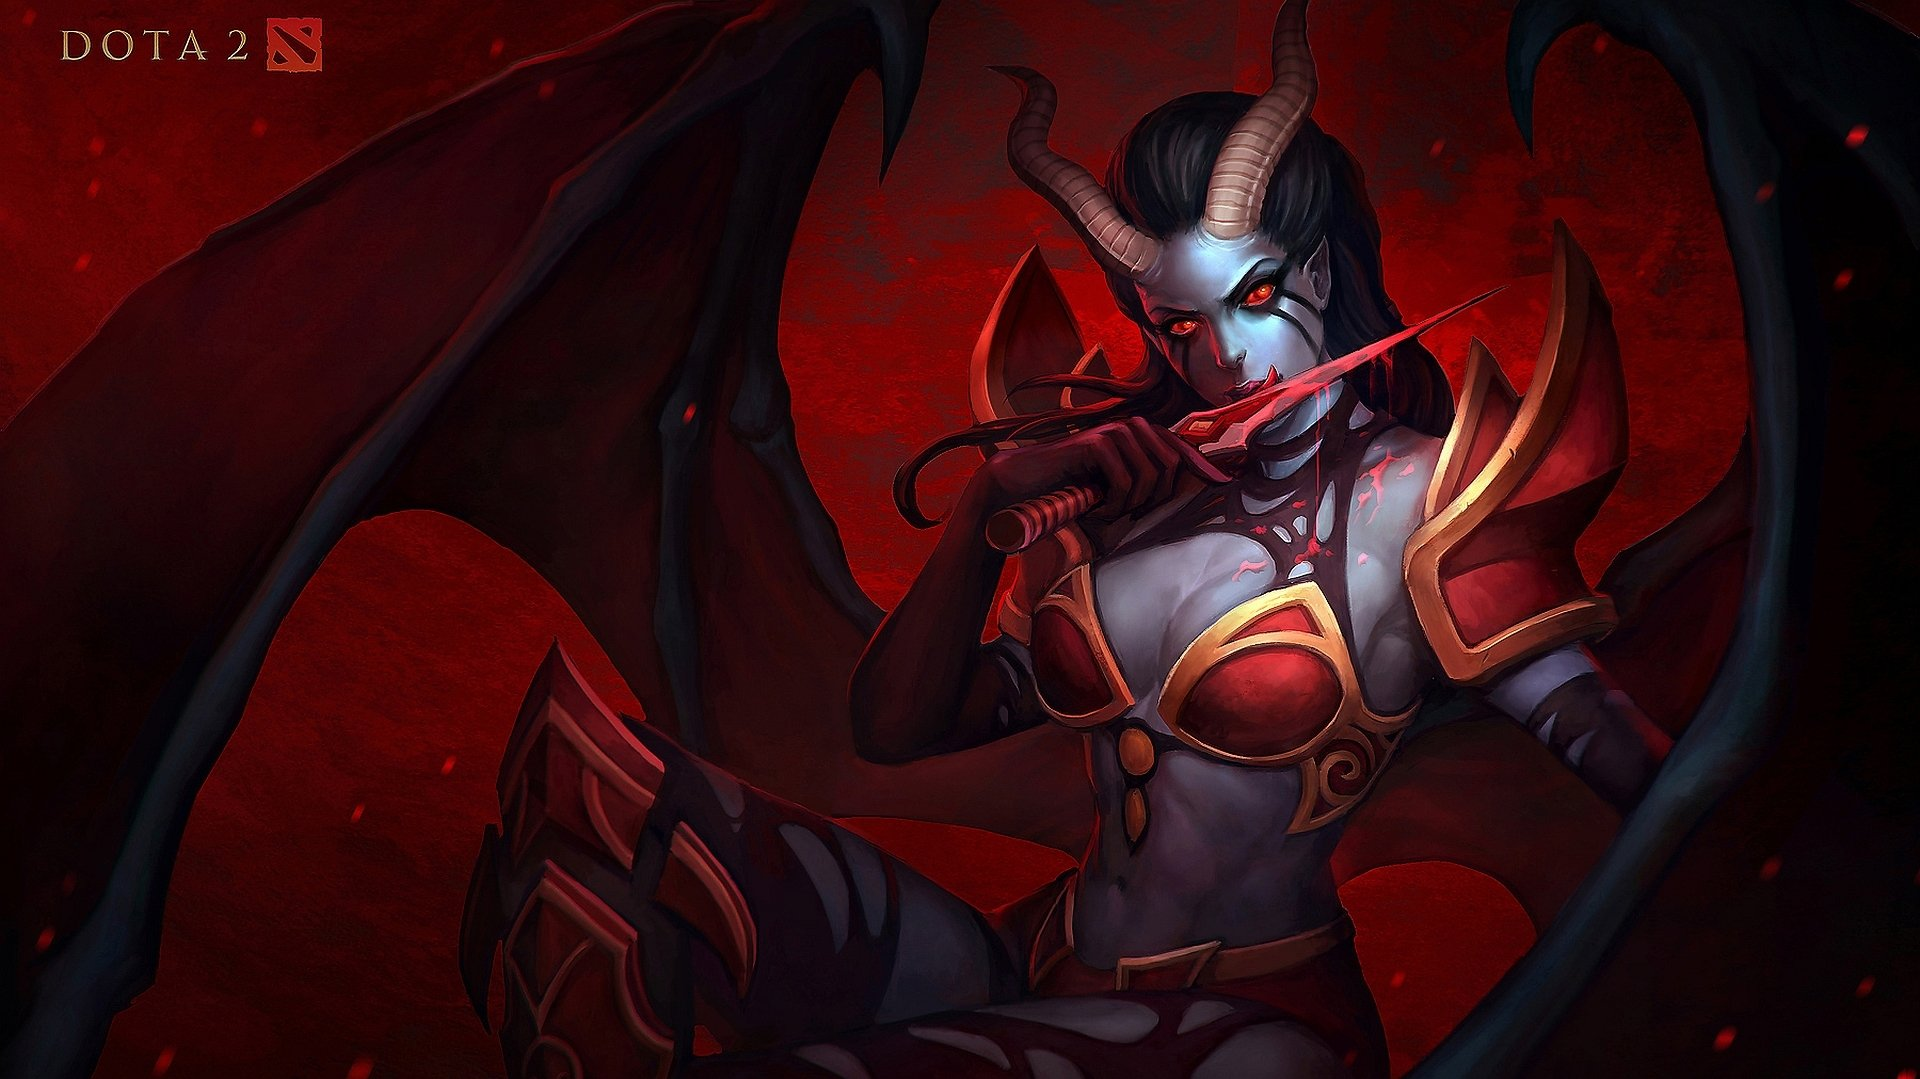 14 Queen Of Pain Dota 2 Hd Wallpapers Background Images